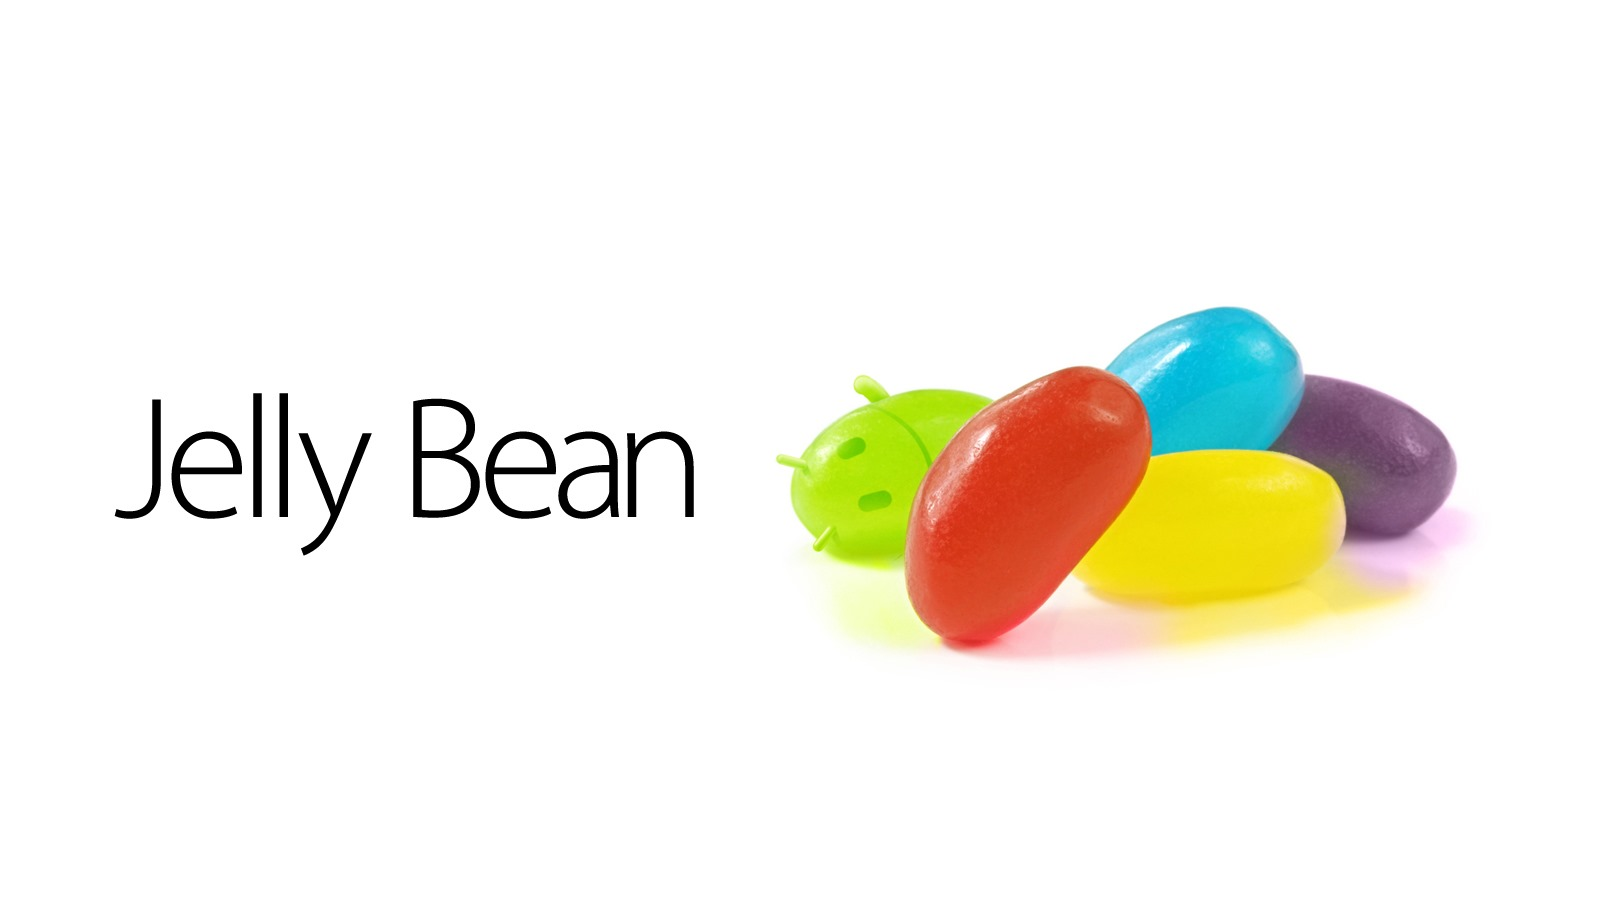 Phone Windows Phone 8 Vs Android Jelly Bean how to hide applications from the app drawer in android jelly bean bean